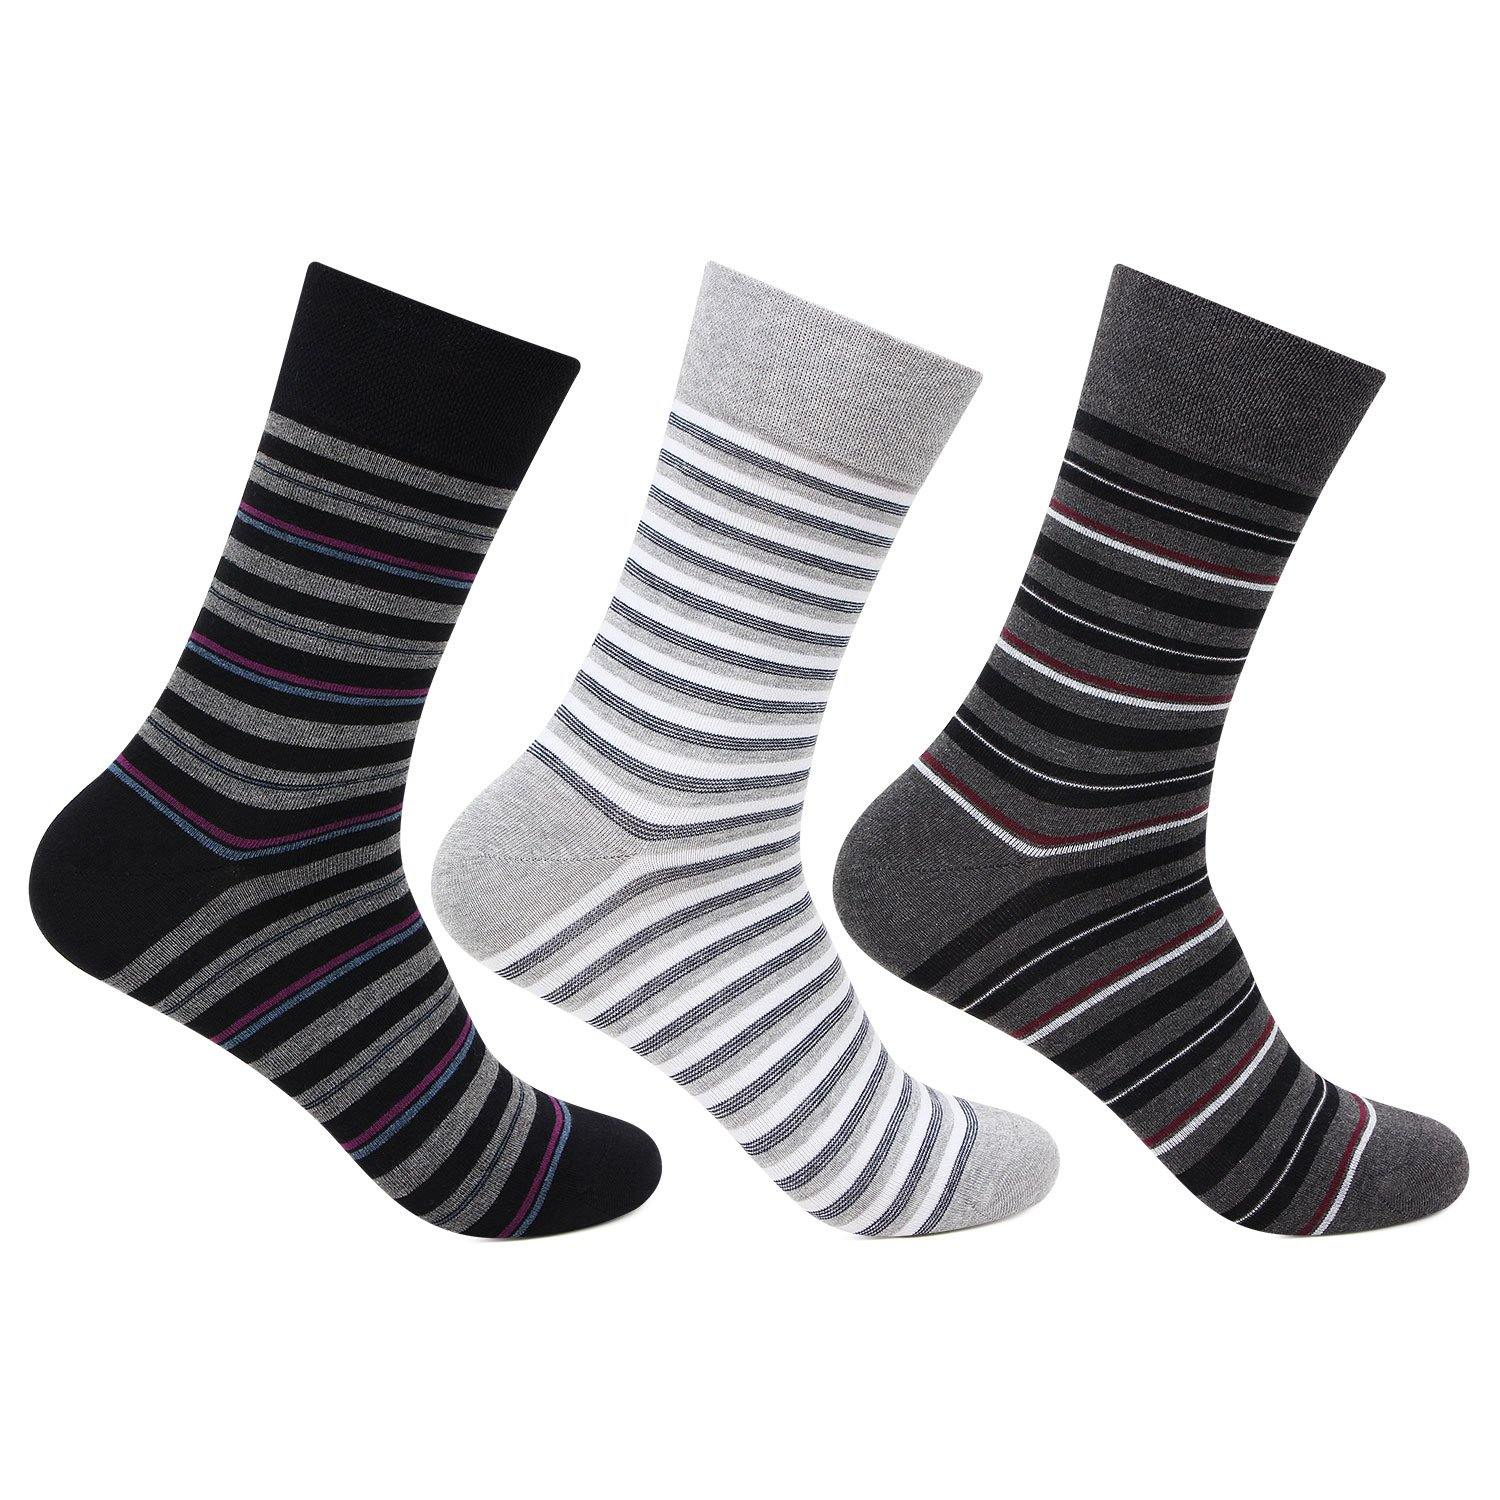 Men's Scottish Collection Crew Socks - Pack of 3